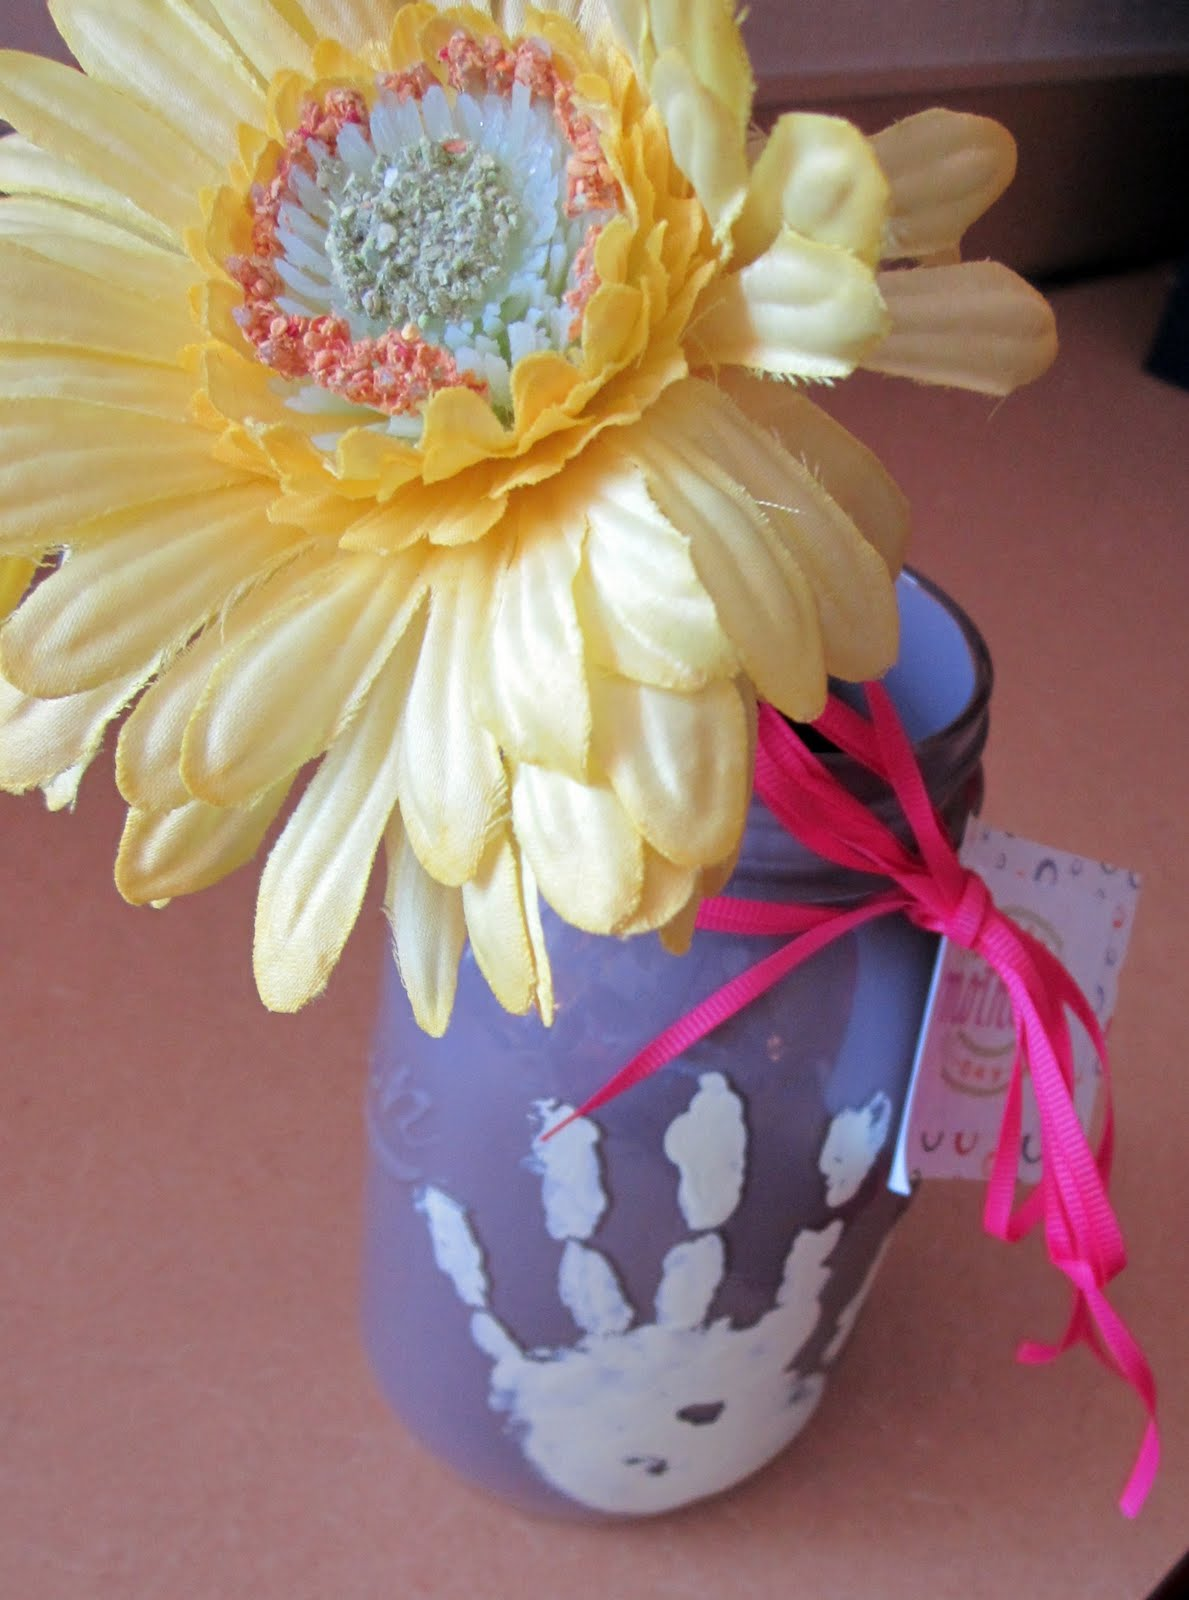 Mothers Day Craft Ideas Kids Part - 44: Mothers Day Mason Jar Kids Craft